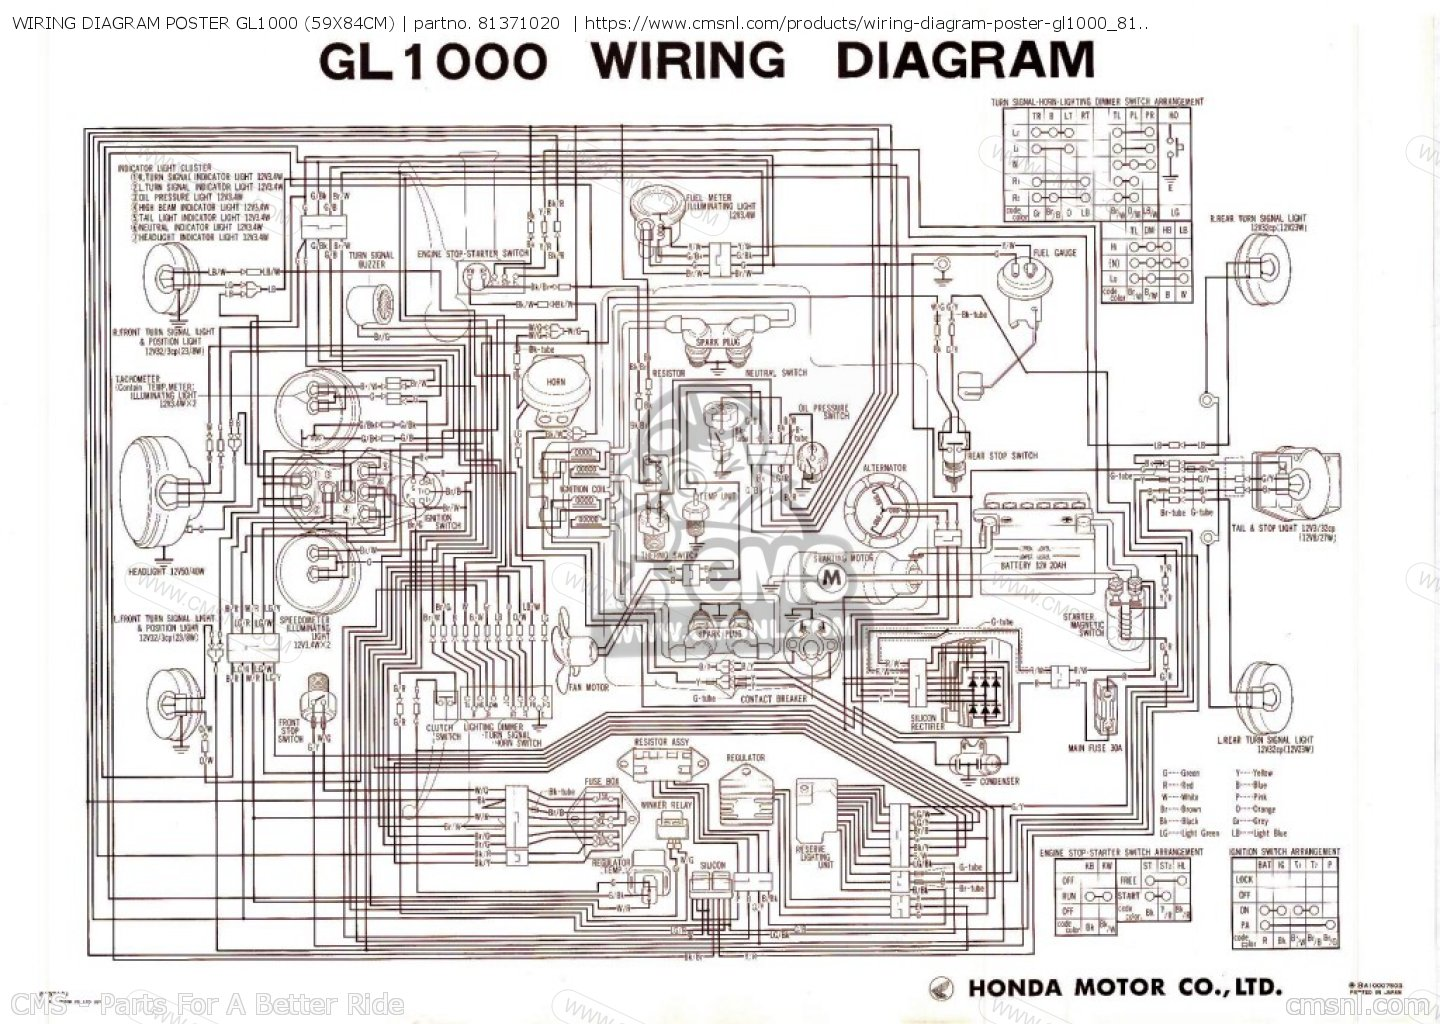 1987 Honda Goldwing Gl1000 Wiring Diagram Auto Electrical 93 Gl1500 A 1200 Diagrams Rh Nhrt Info 1500